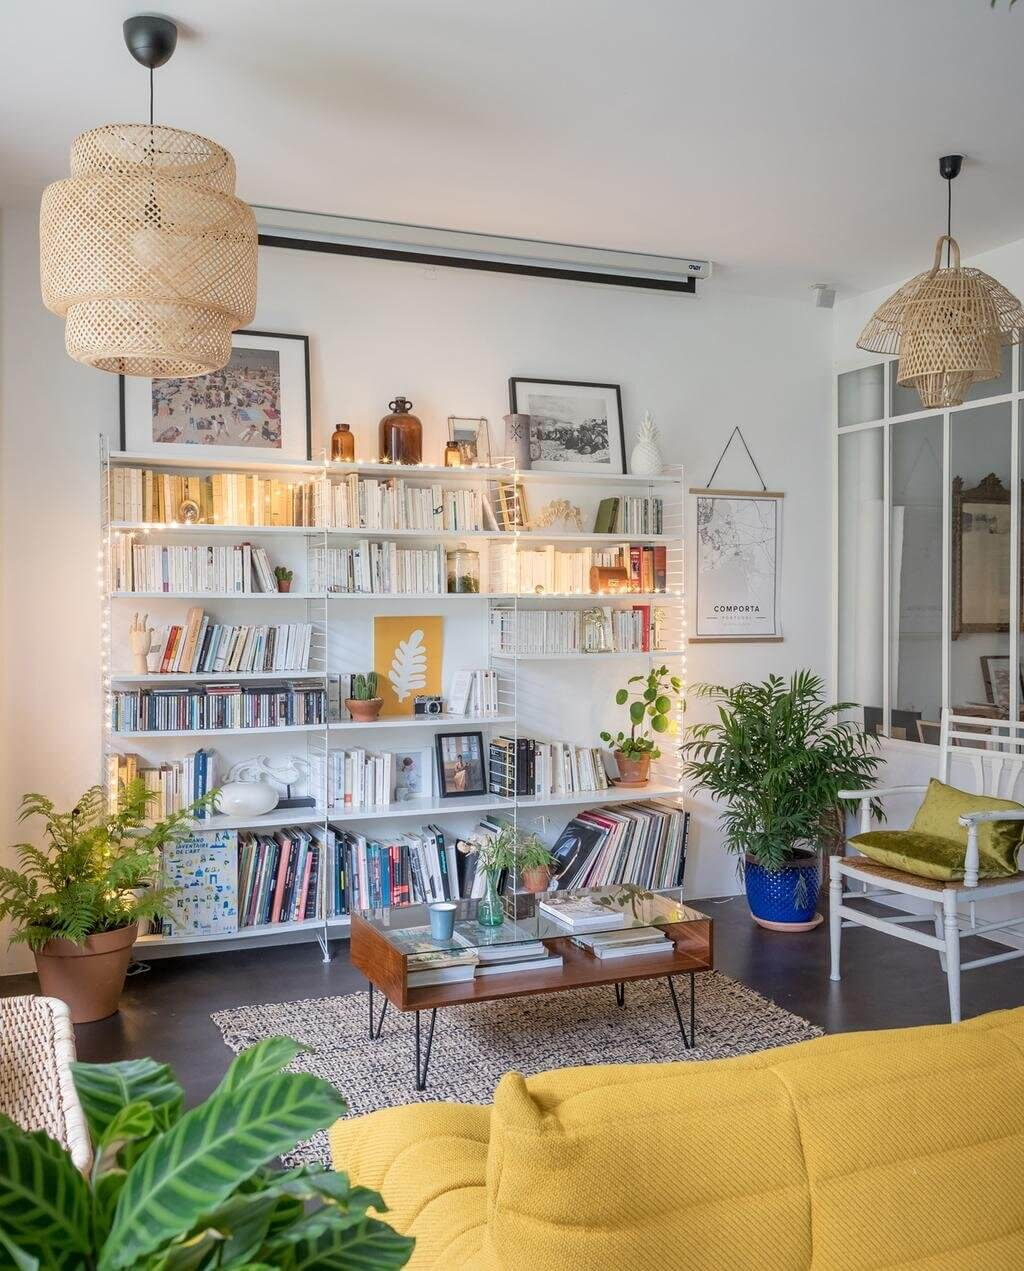 A Bright and Vibrant Family Home in an Old Factory in Paris